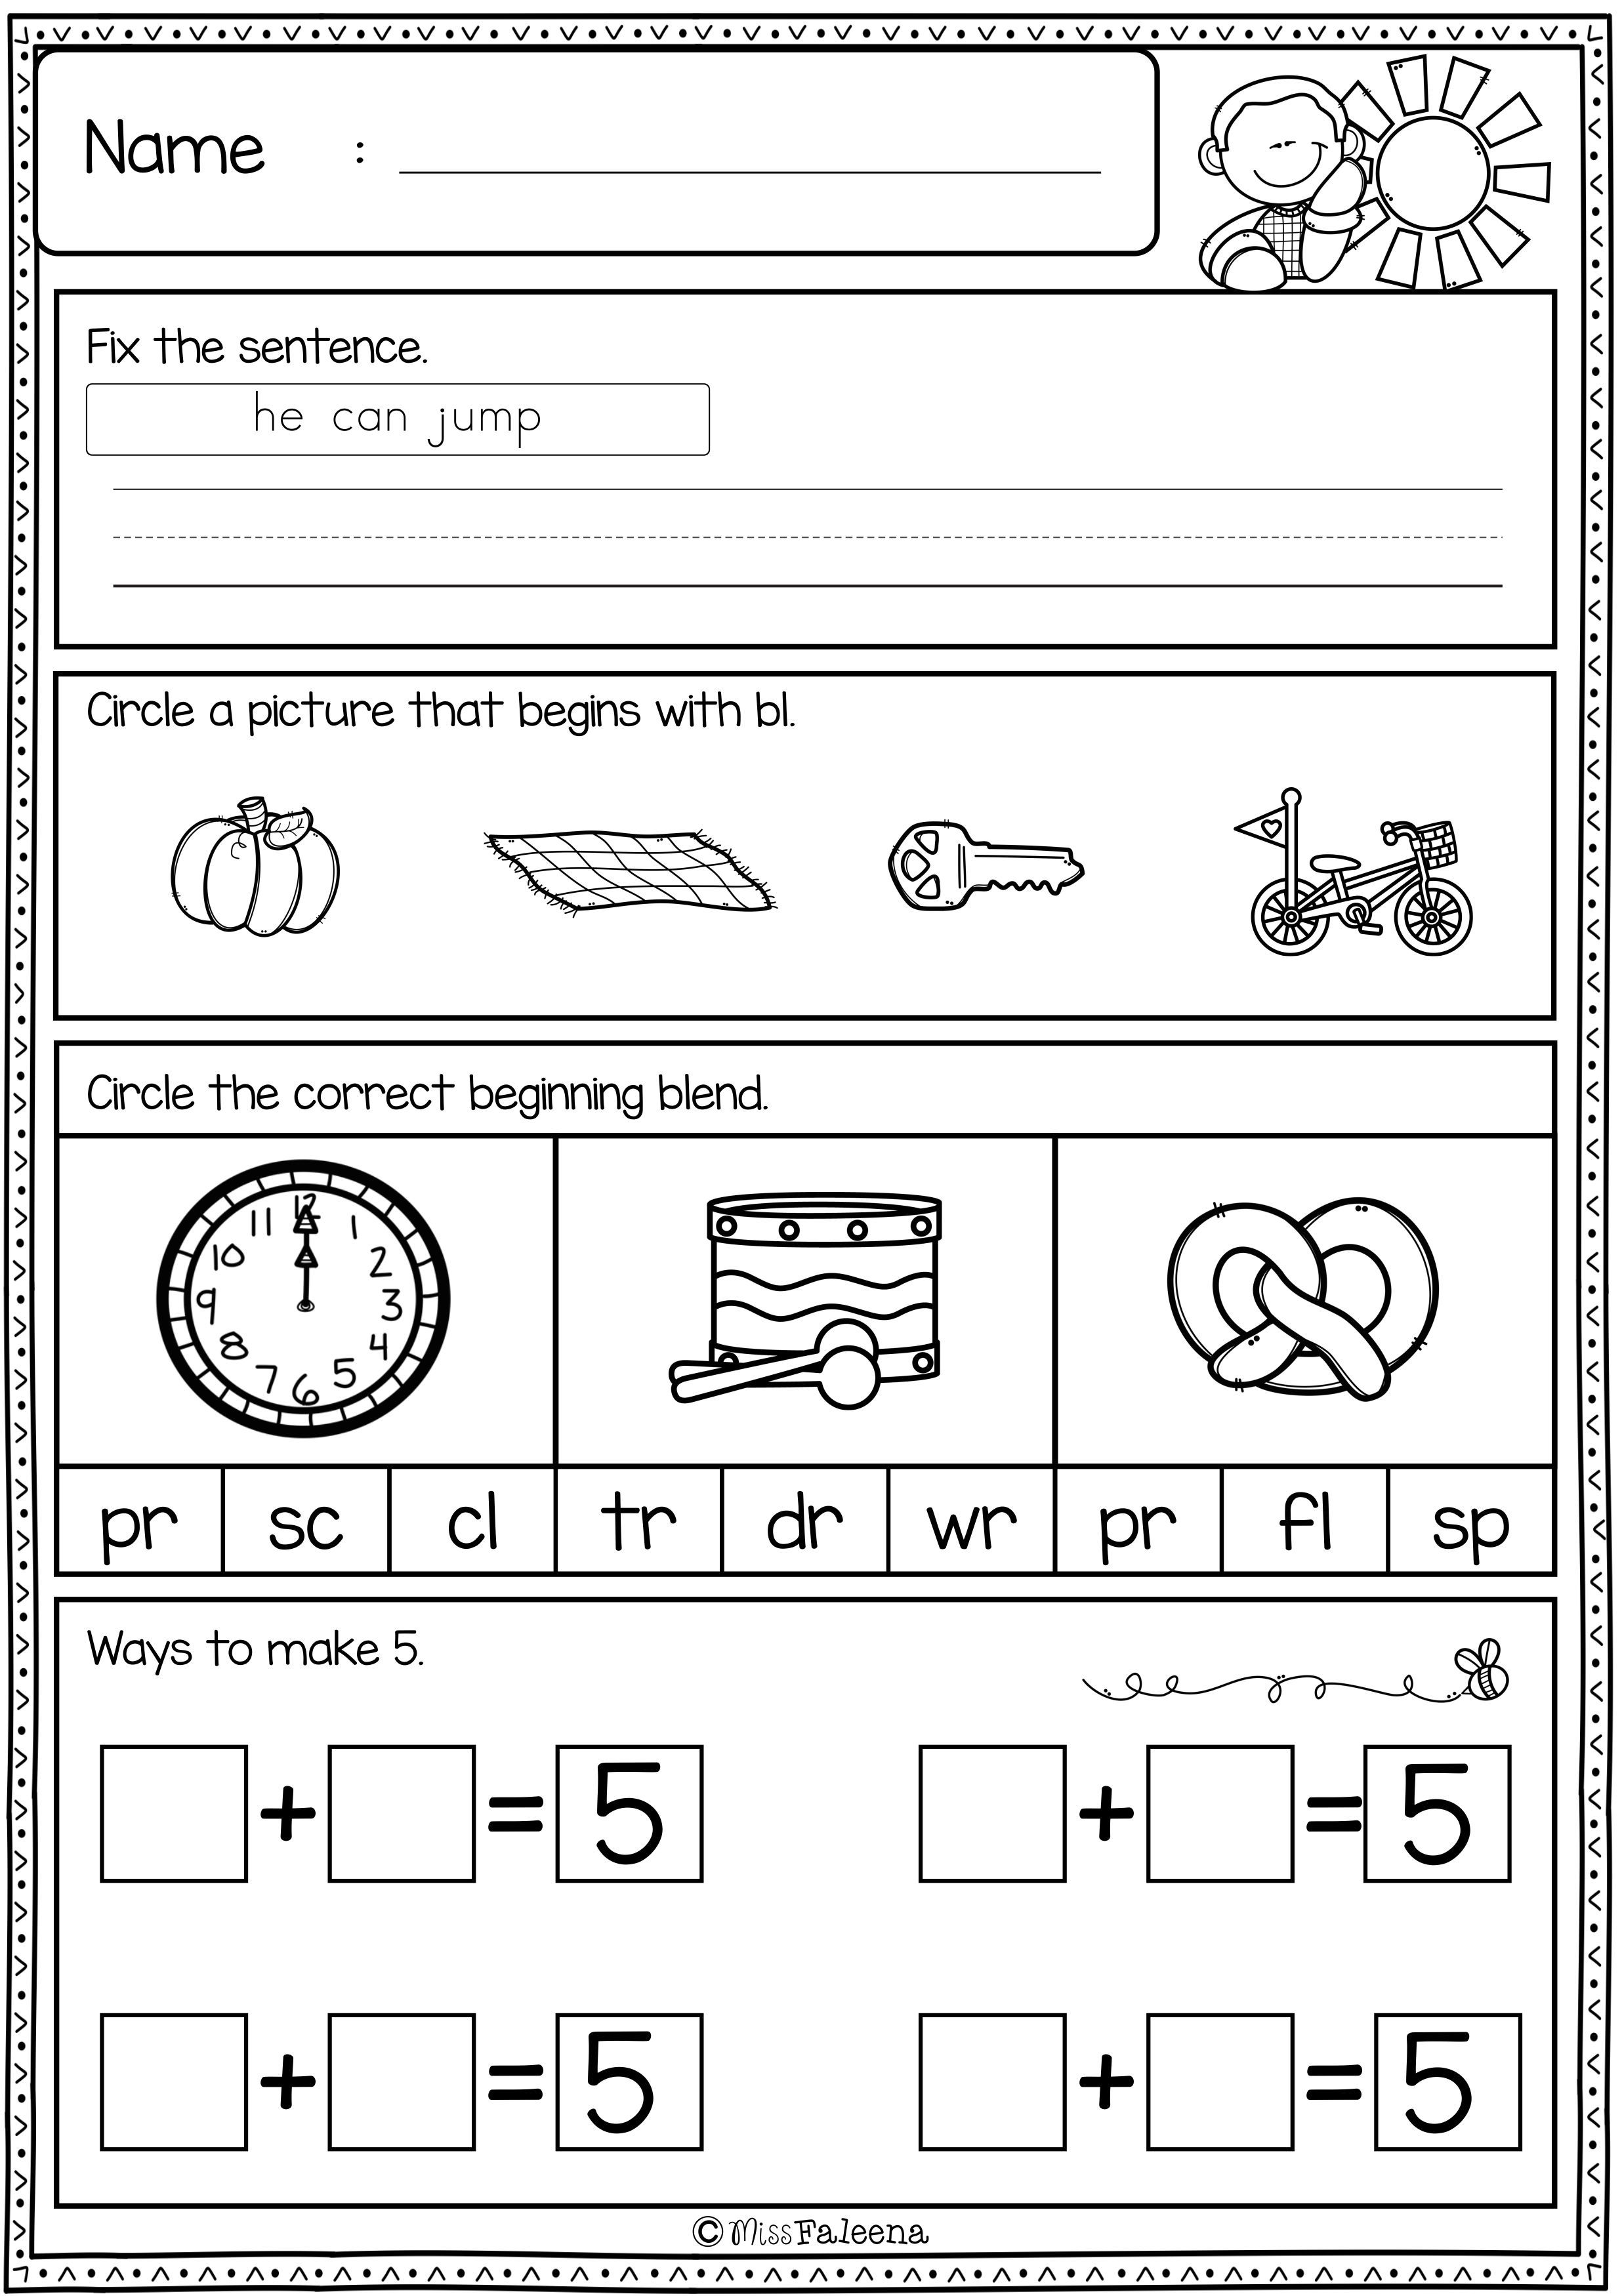 First Grade Morning Work Set 3 Includes 60 Pages Of Morning Work Activities For Literacy And Math Th Teacher Created Resources Elementary Learning First Grade